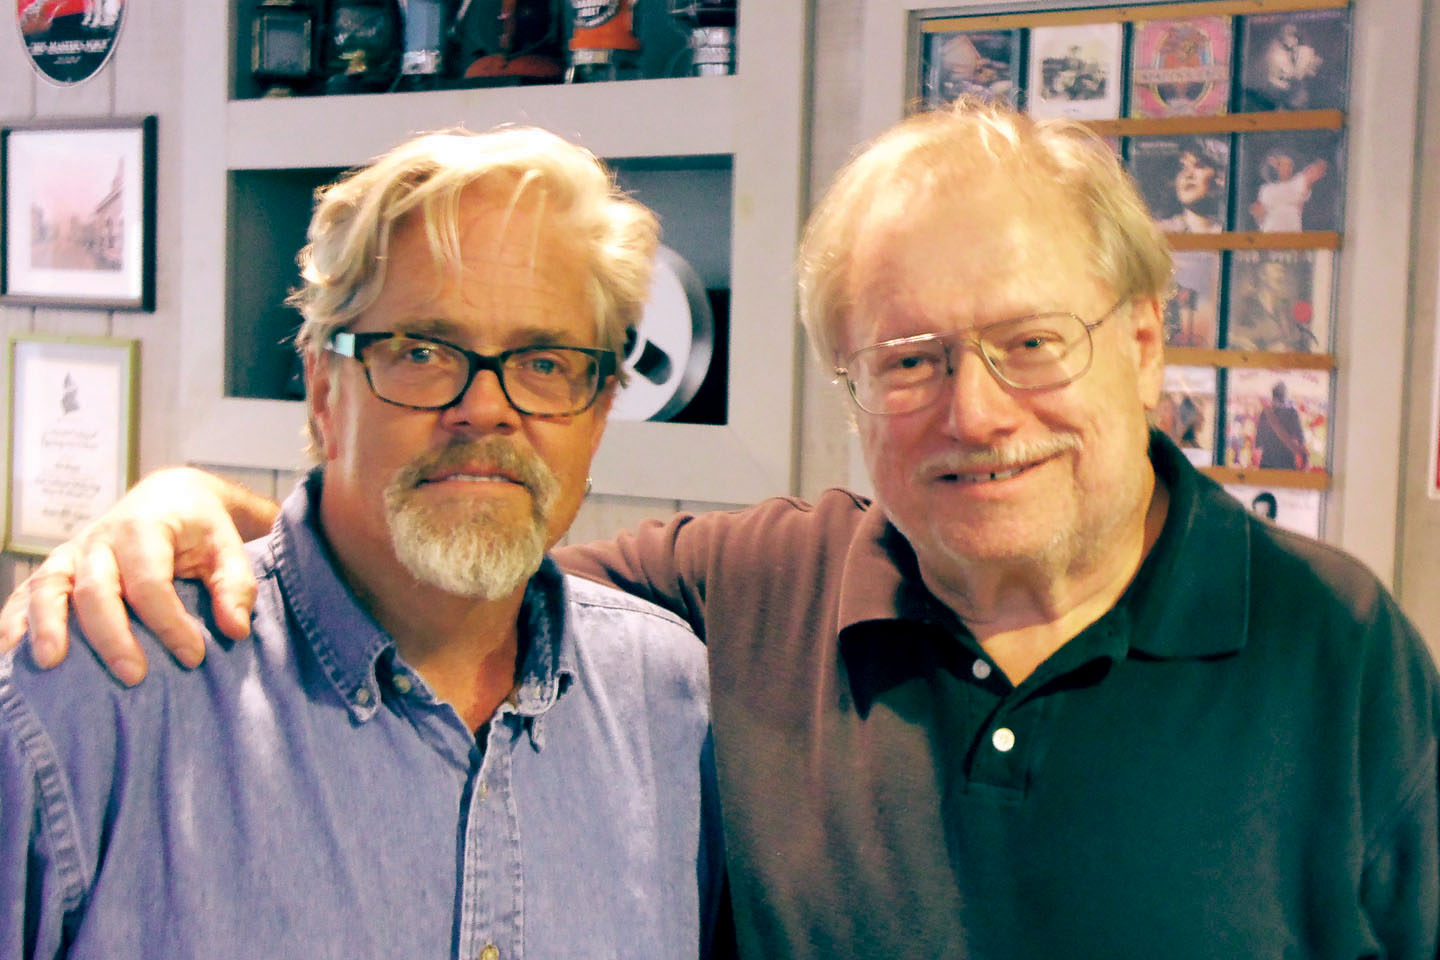 John Cowan and Rich Adler at Sound Wave Recording studios